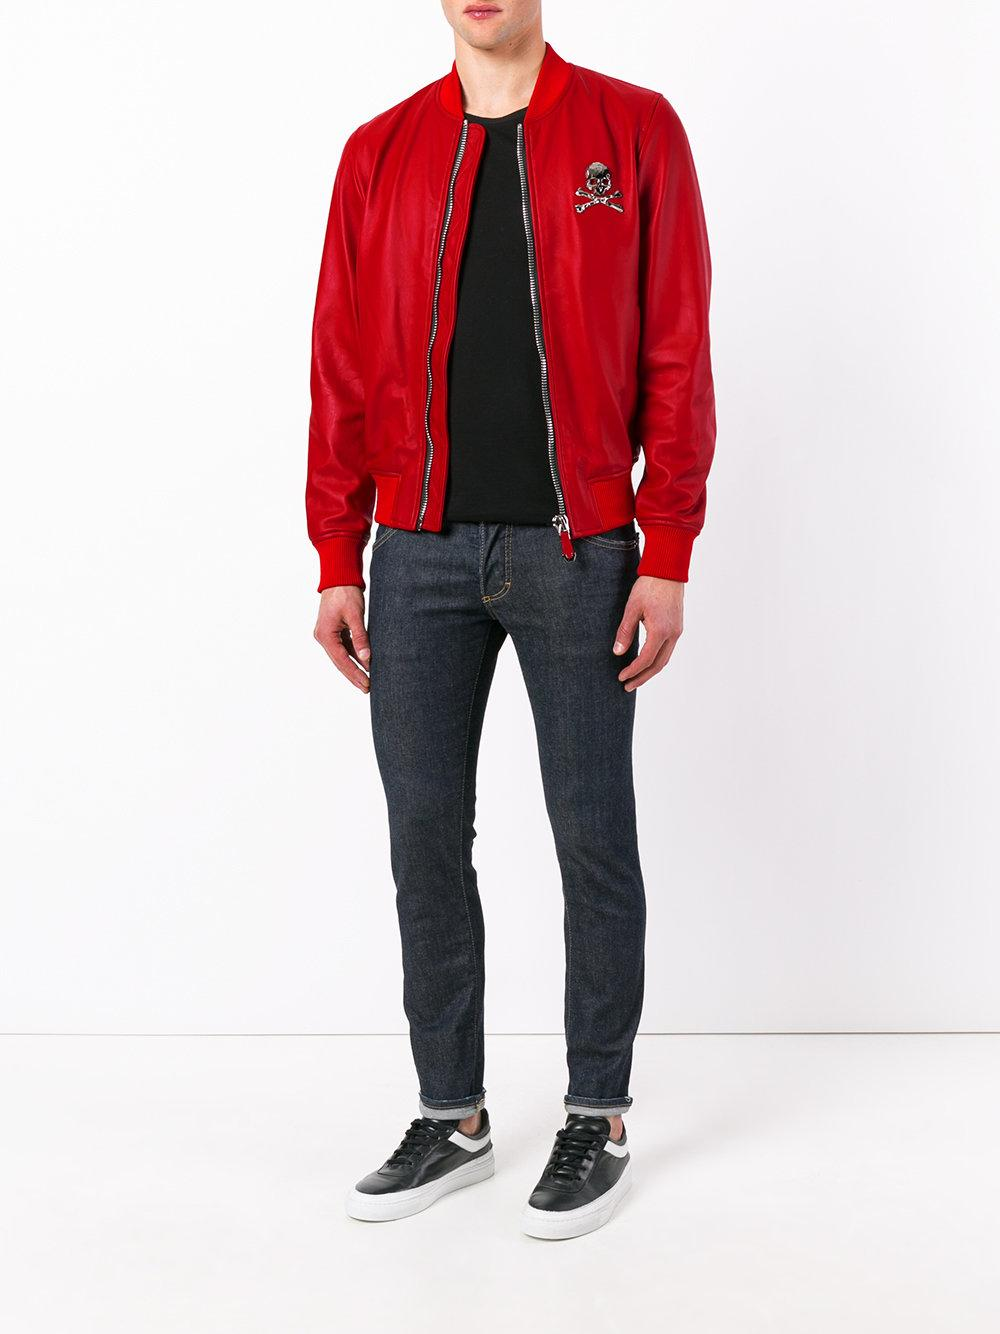 Philipp Plein Synthetic No Light Bomber Jacket in Red for Men